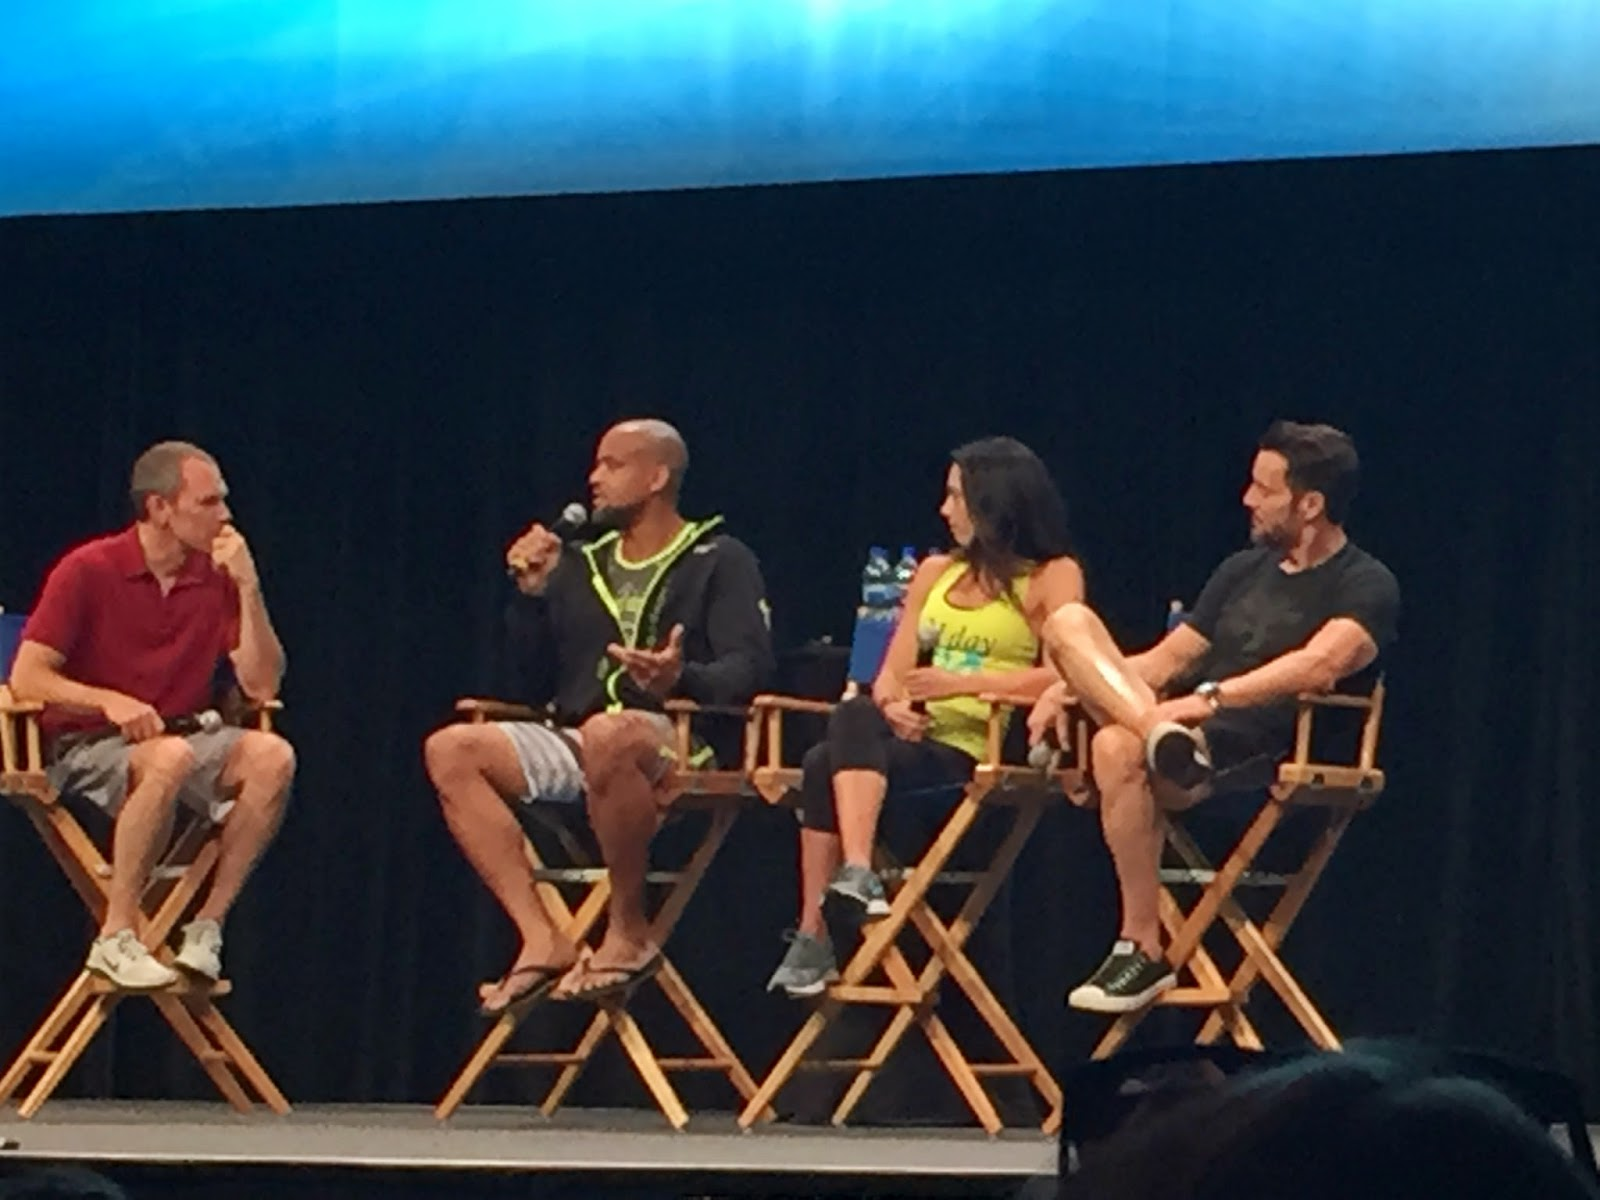 Deidra Penrose, Shaun T, Autumn Calabrese, Tony Horton, P90X3, Insanity Max 30, 21 Day fix, Carl Daikeler, CEO beachbody,  Elite Beachbody coach, health and fitness coach, top fitness coach, top online fitness coach, work from home, successful fitness coach, fitness motivation, , dream Team, success club 2015, cancun beachbody